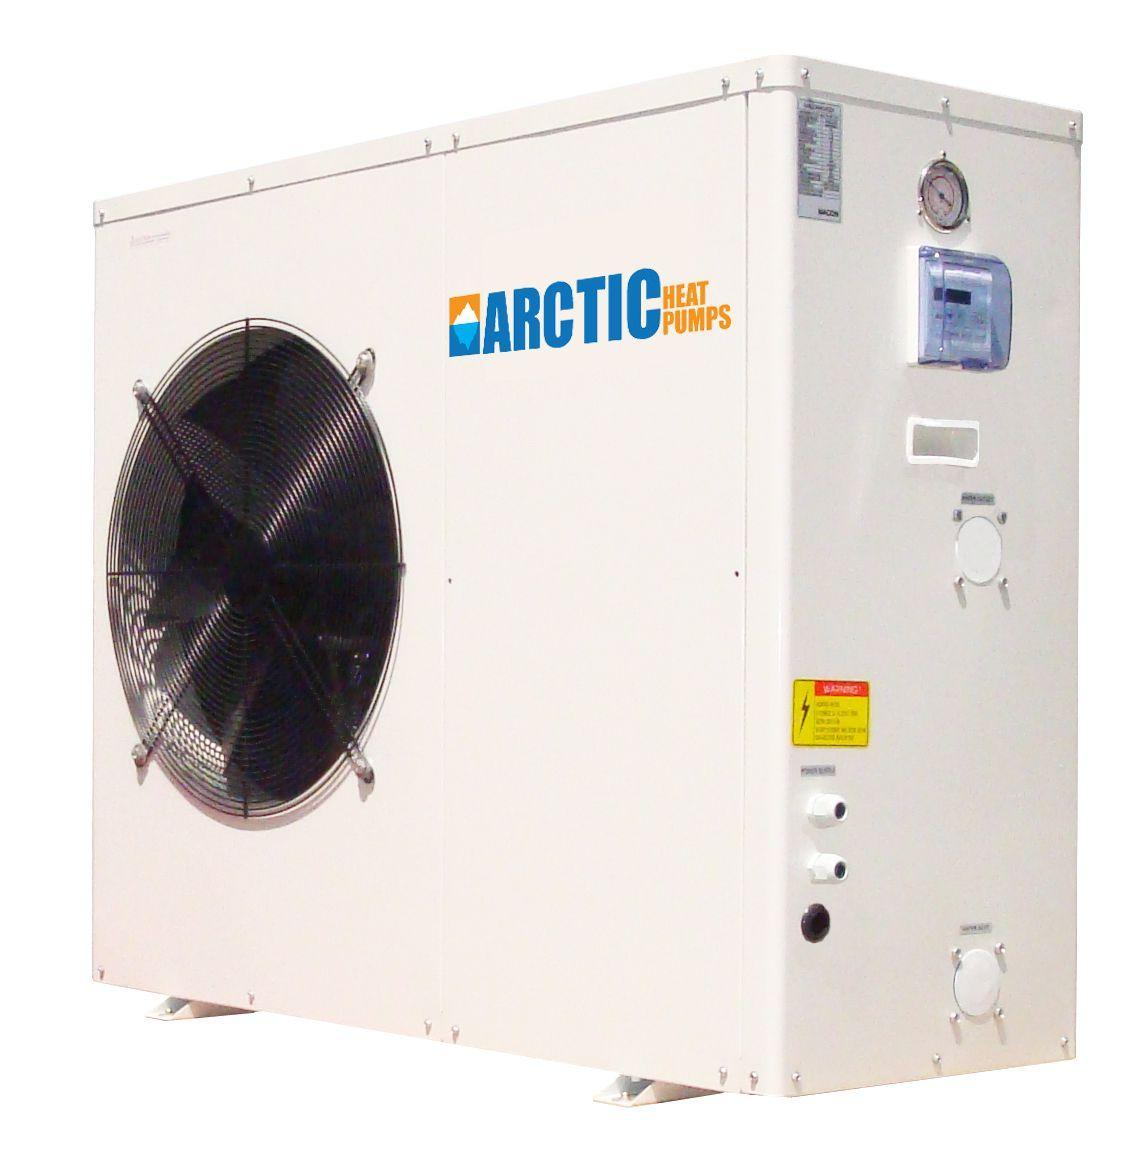 Arctic Heat Pump SPA-025ZA - 10 Kw 35,000 BTU